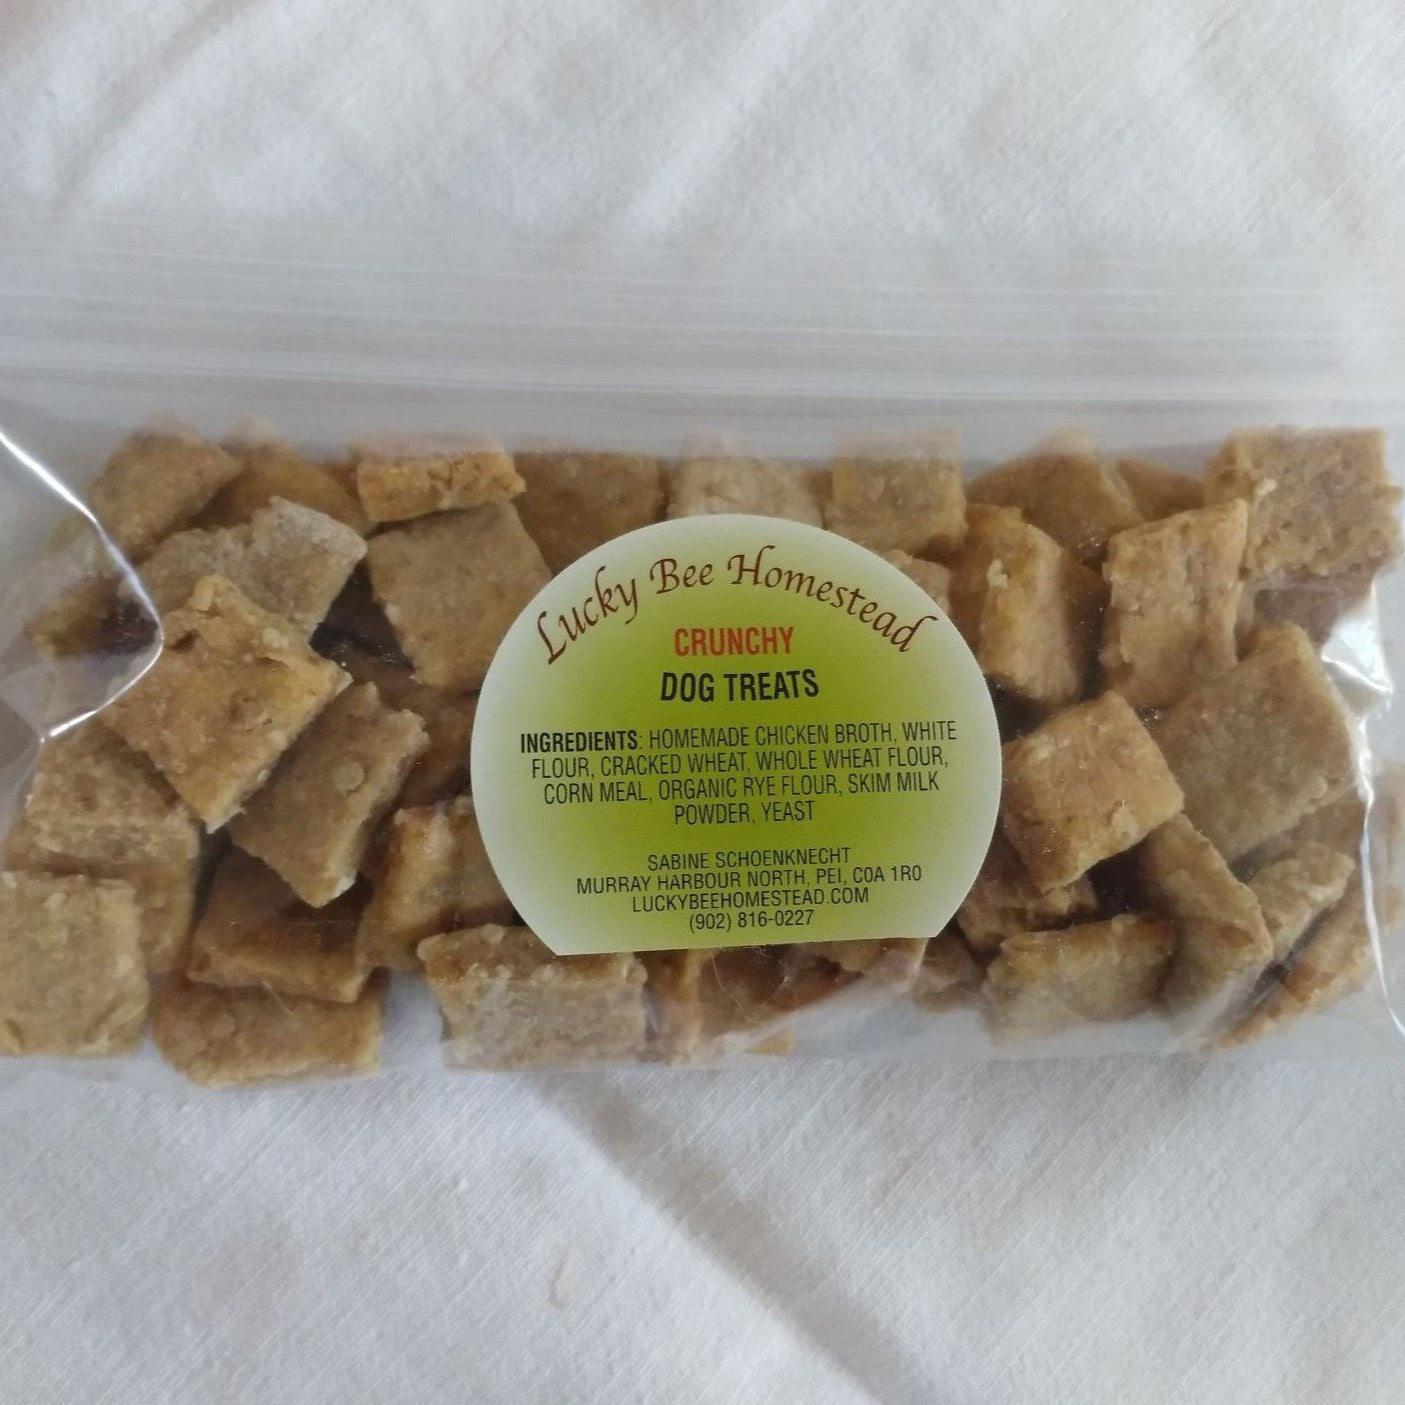 A bag of dog treats